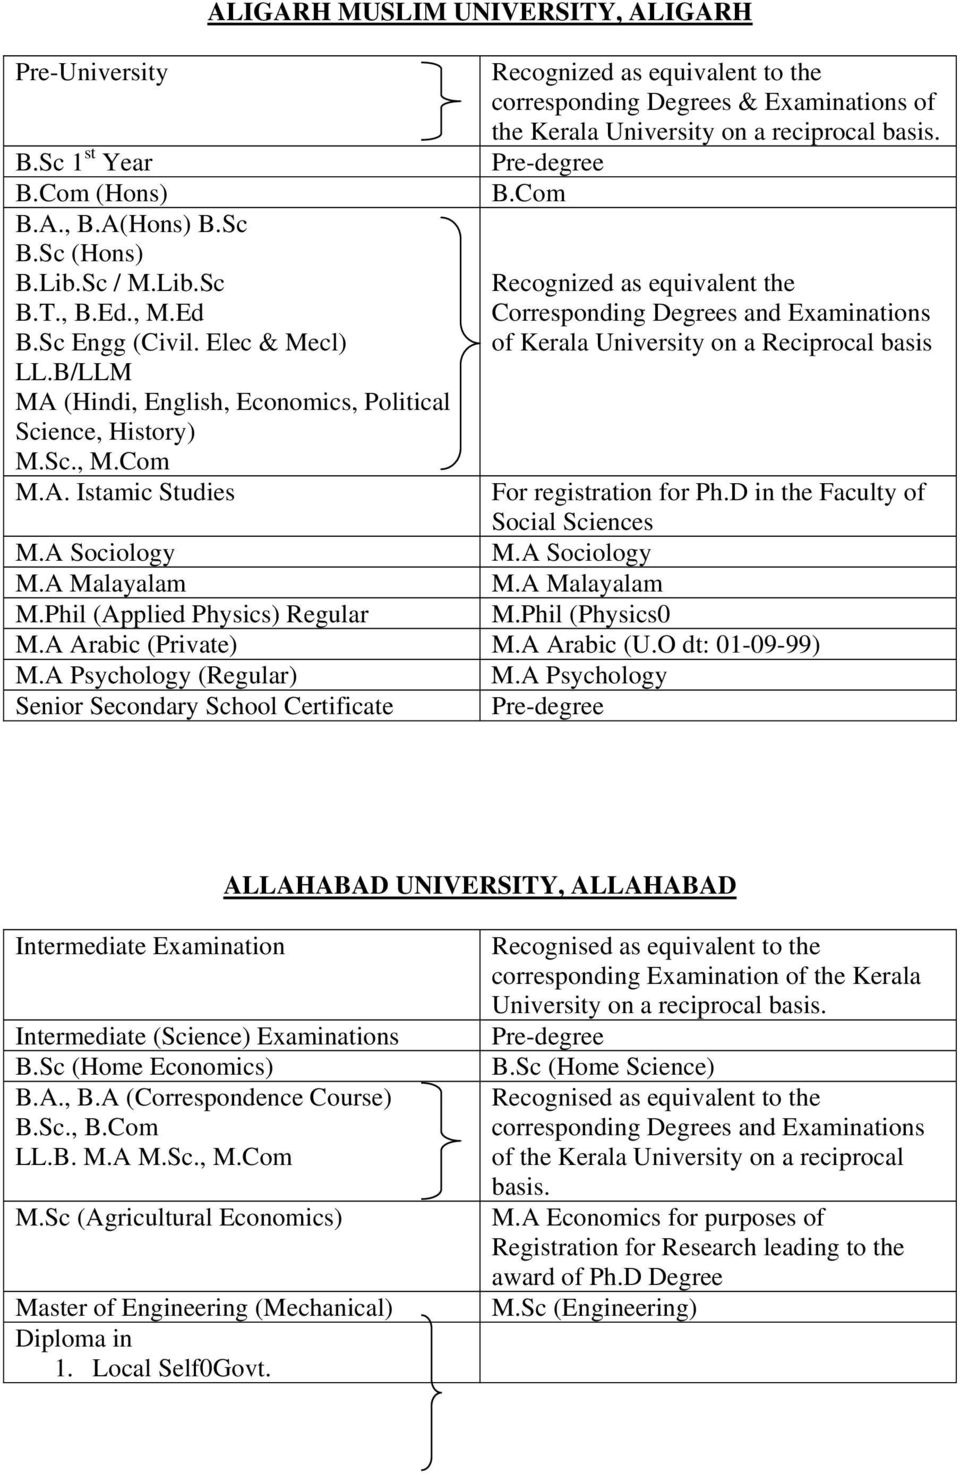 Elec & Mecl) of Kerala University on a Reciprocal basis LL.B/LLM MA (Hindi, English, Economics, Political Science, History) M.Sc., M.Com M.A. Istamic Studies For registration for Ph.